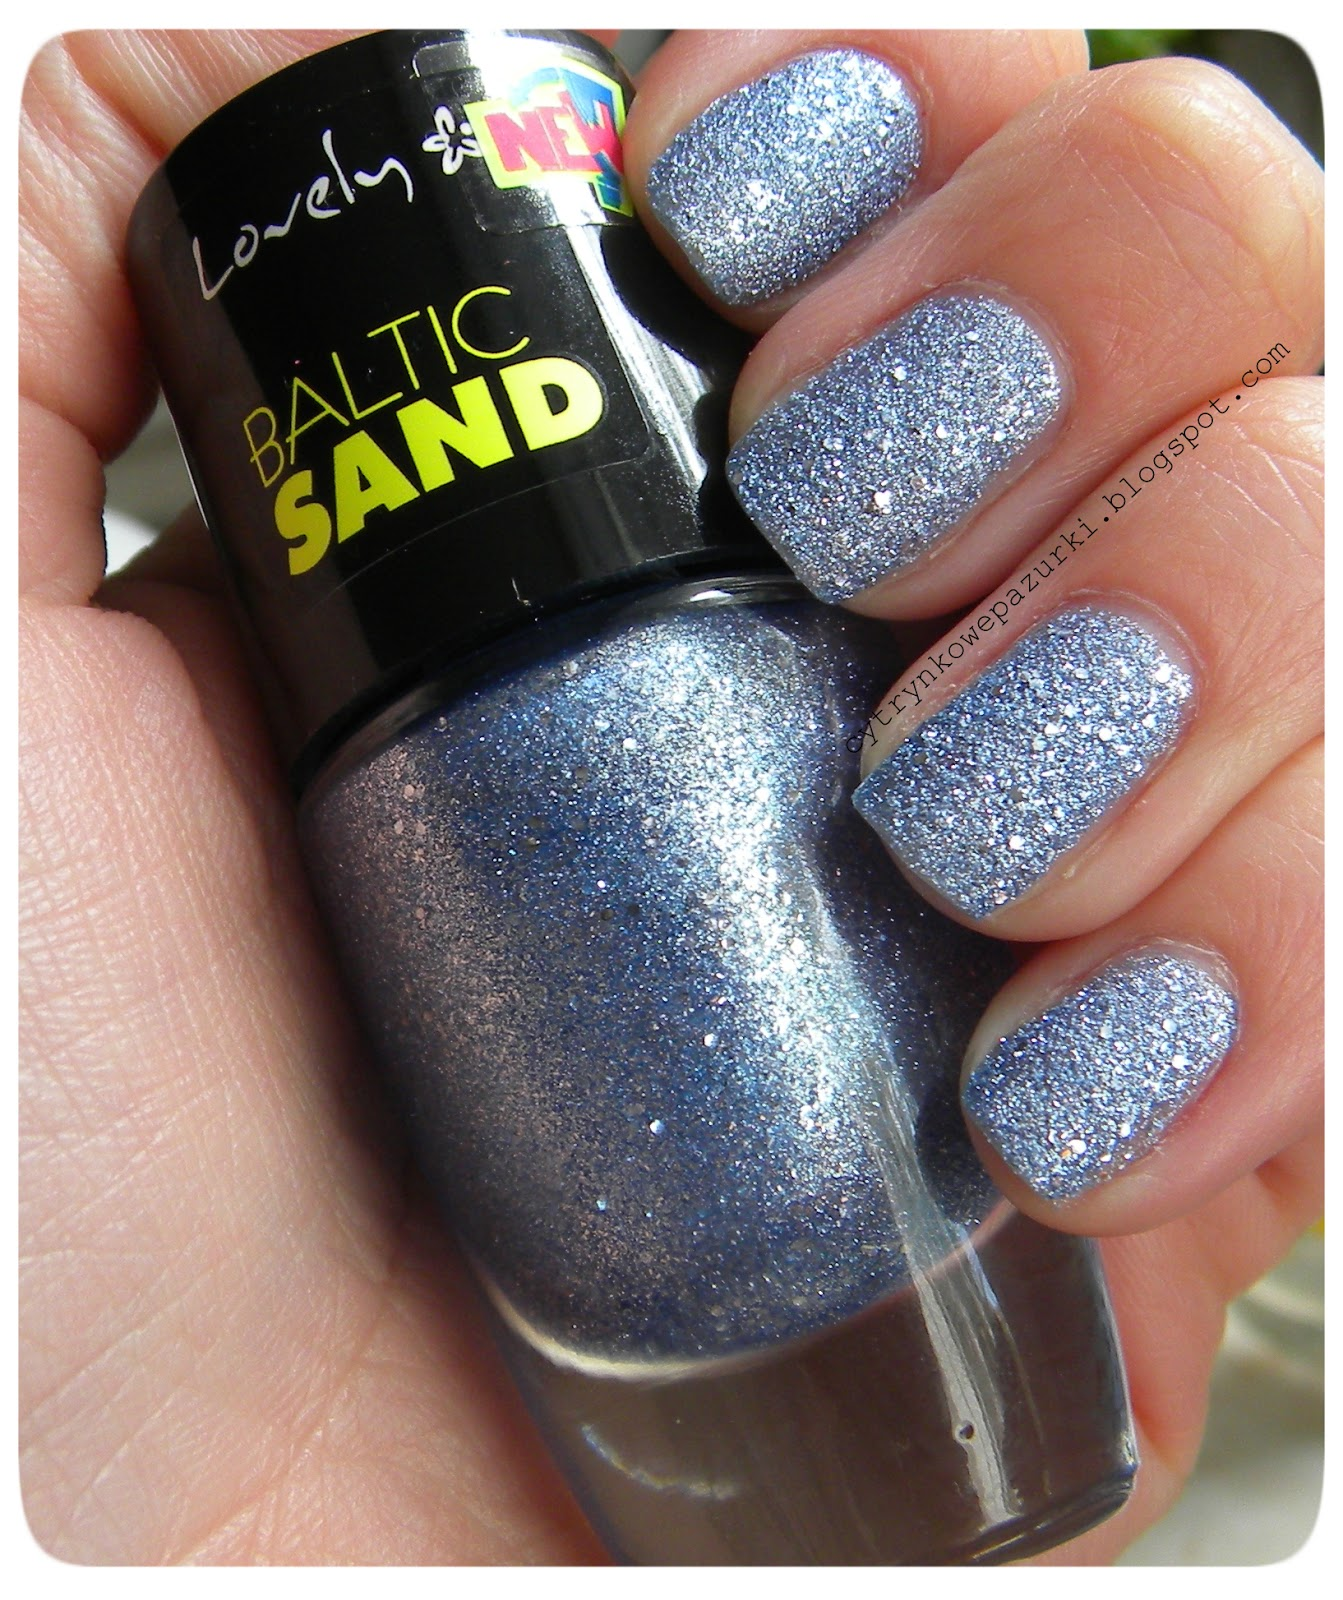 Lovely Baltic Sand 9 nowy kolor